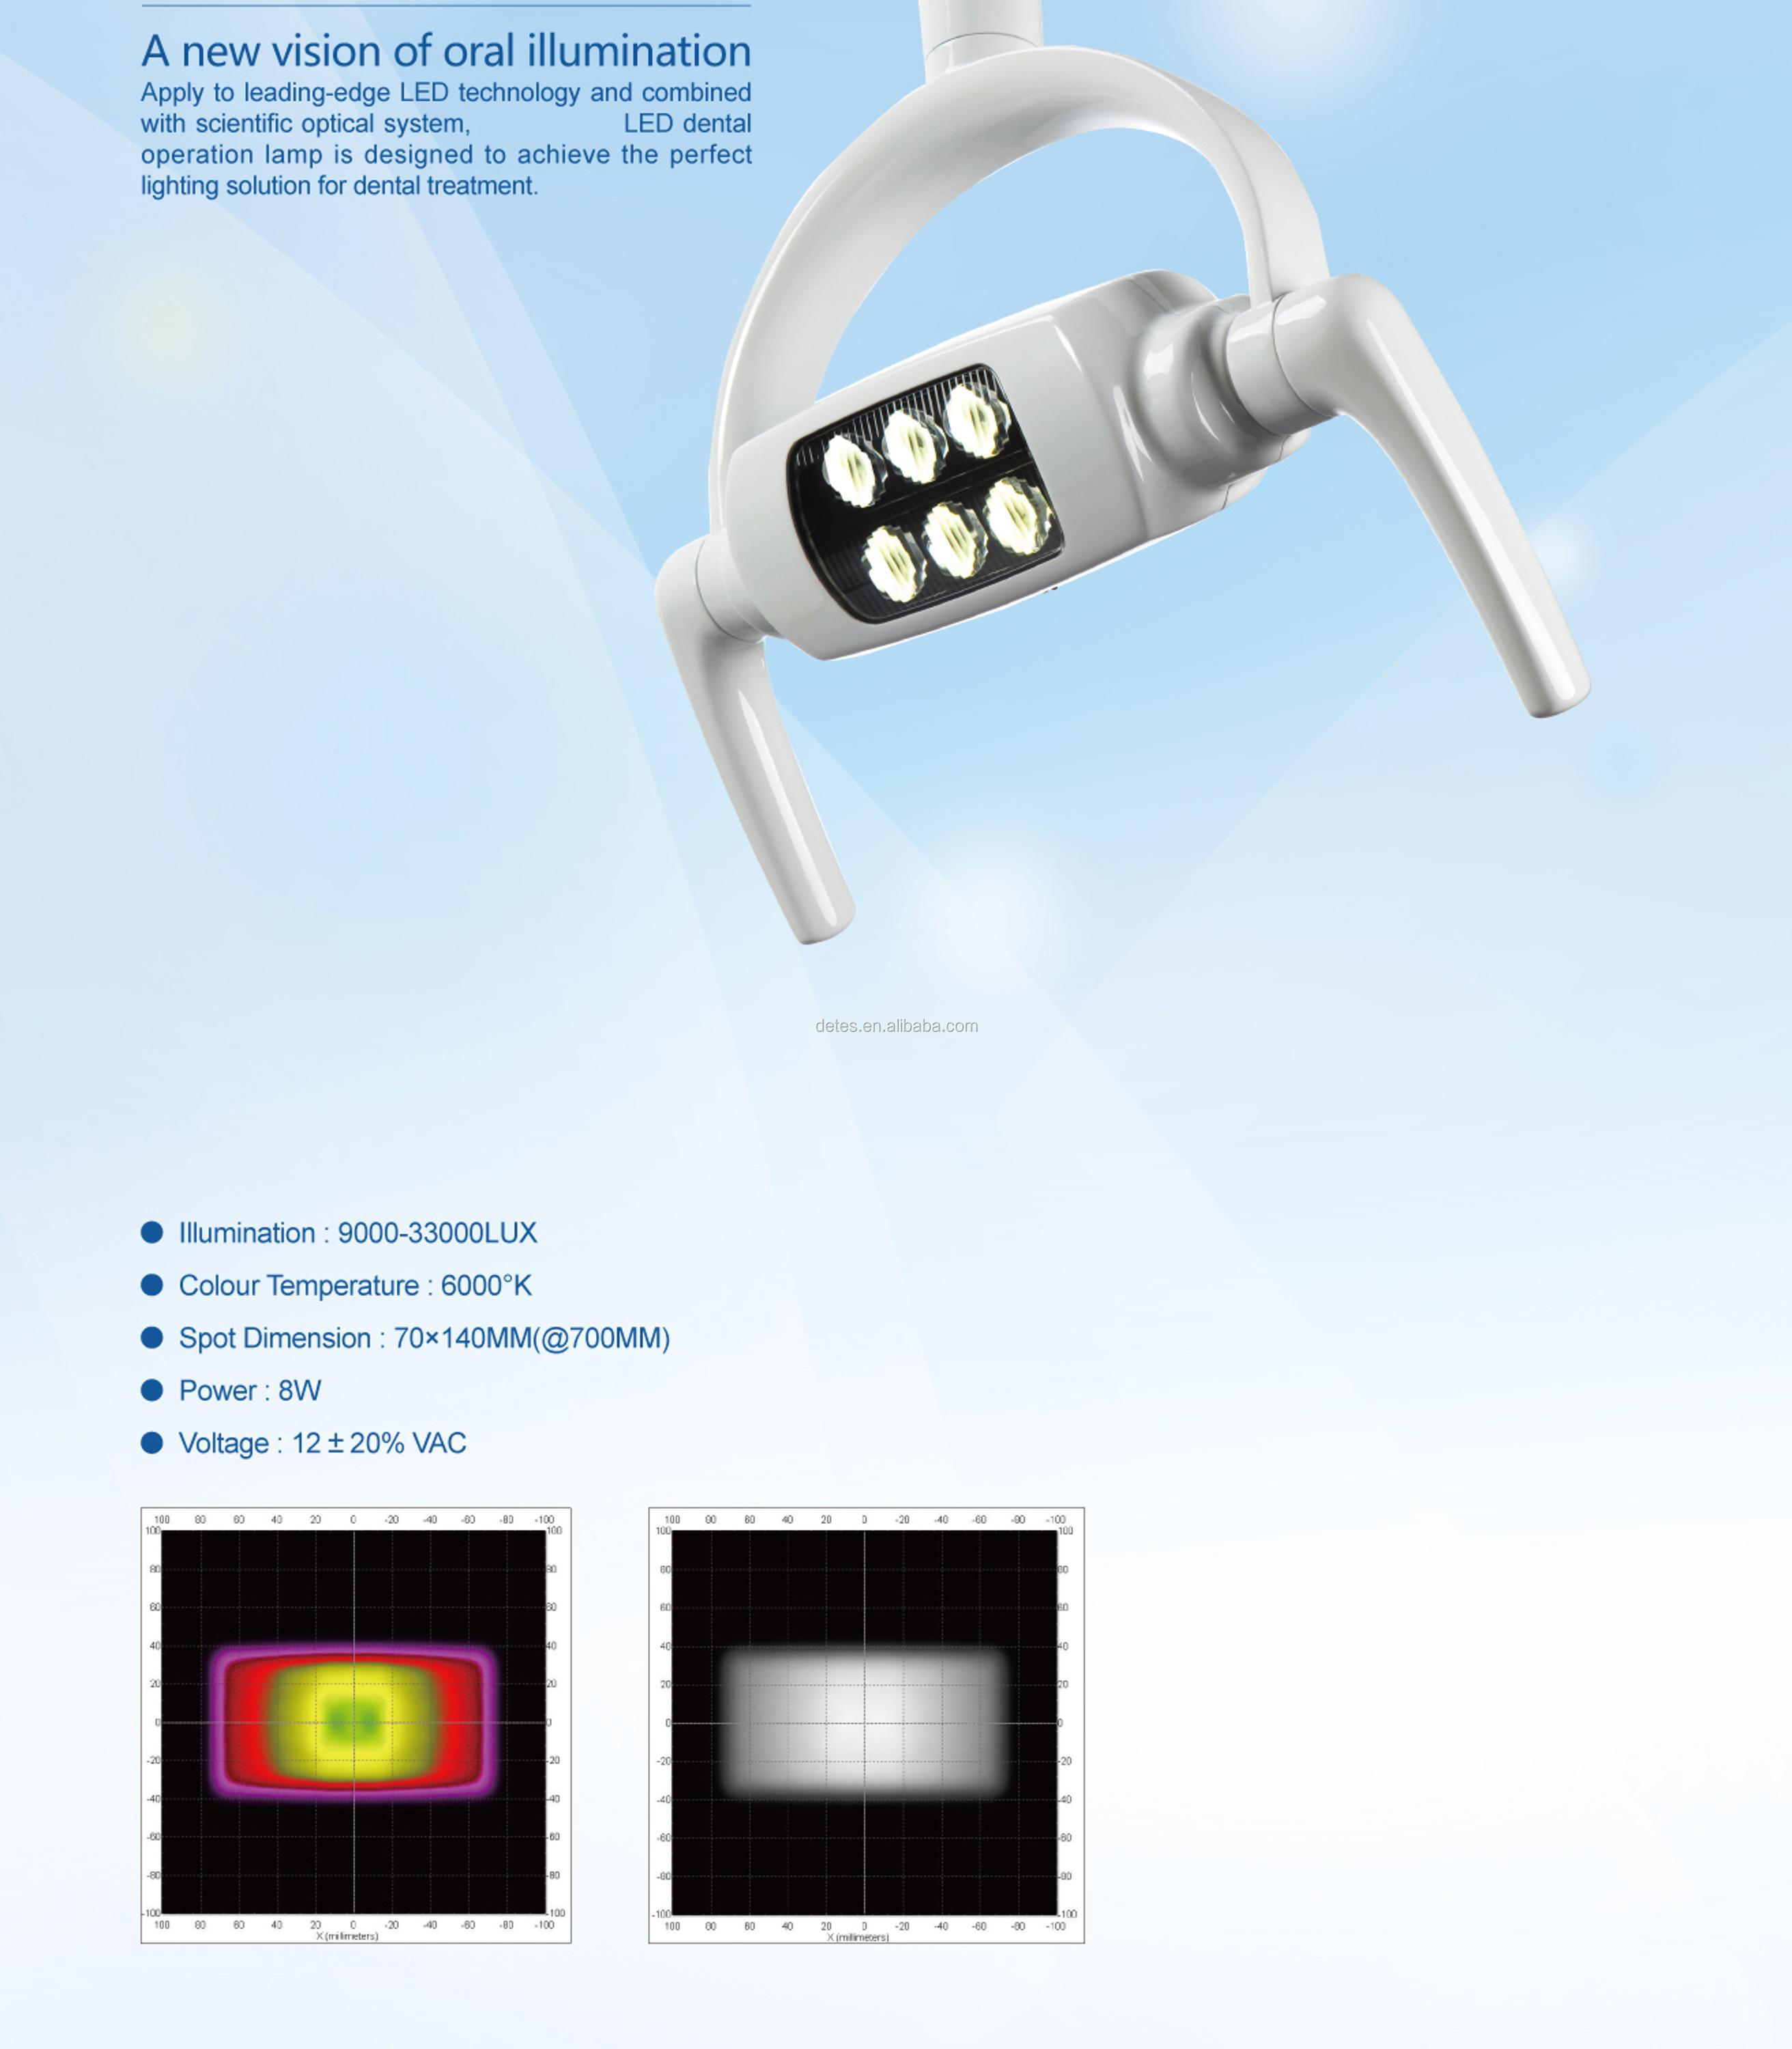 Nice 6500-26000LUX dental LED lamp with sensor